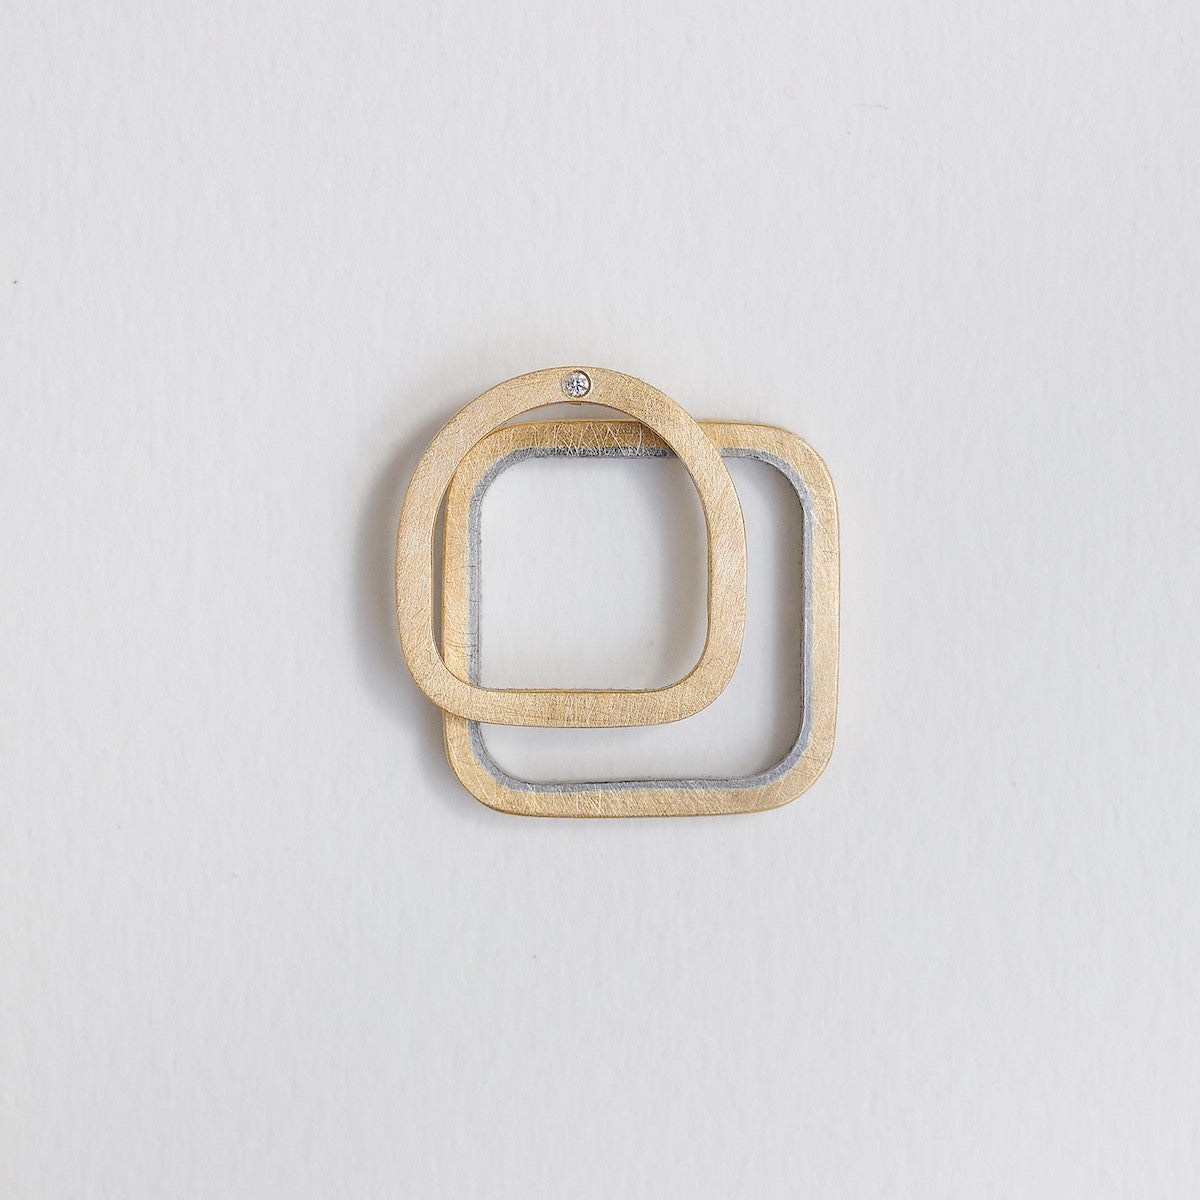 'Round Square' Pair of Gold and Platinum Wedding Rings